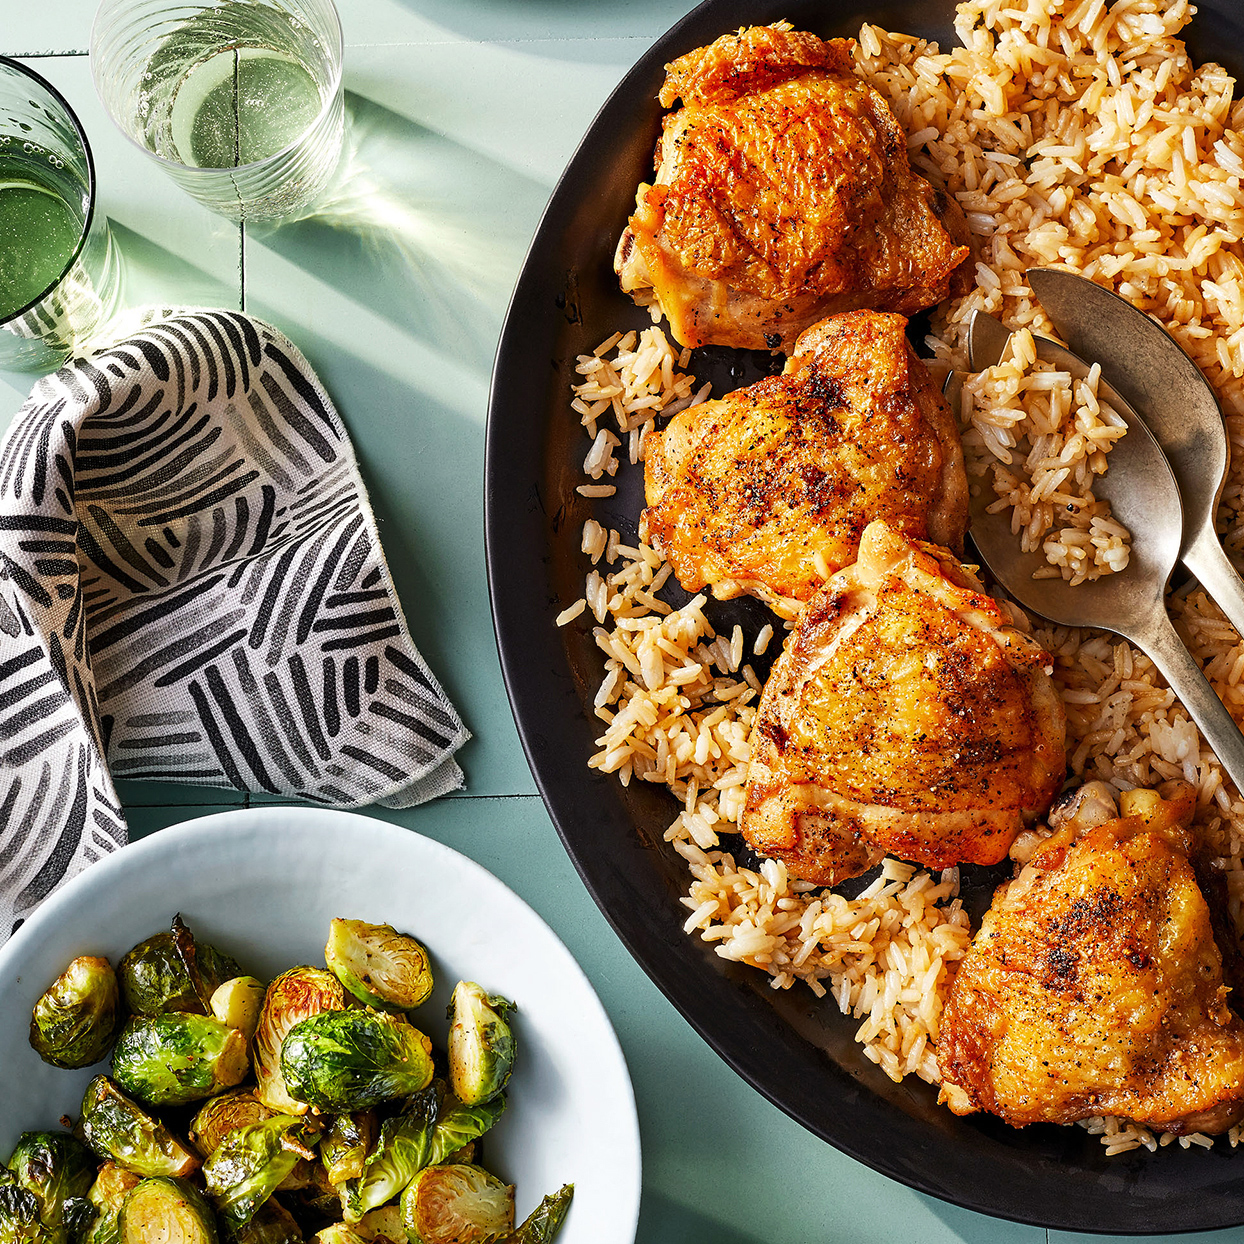 Roasted Chicken and Rice with Brussels sprouts in black and white dishes